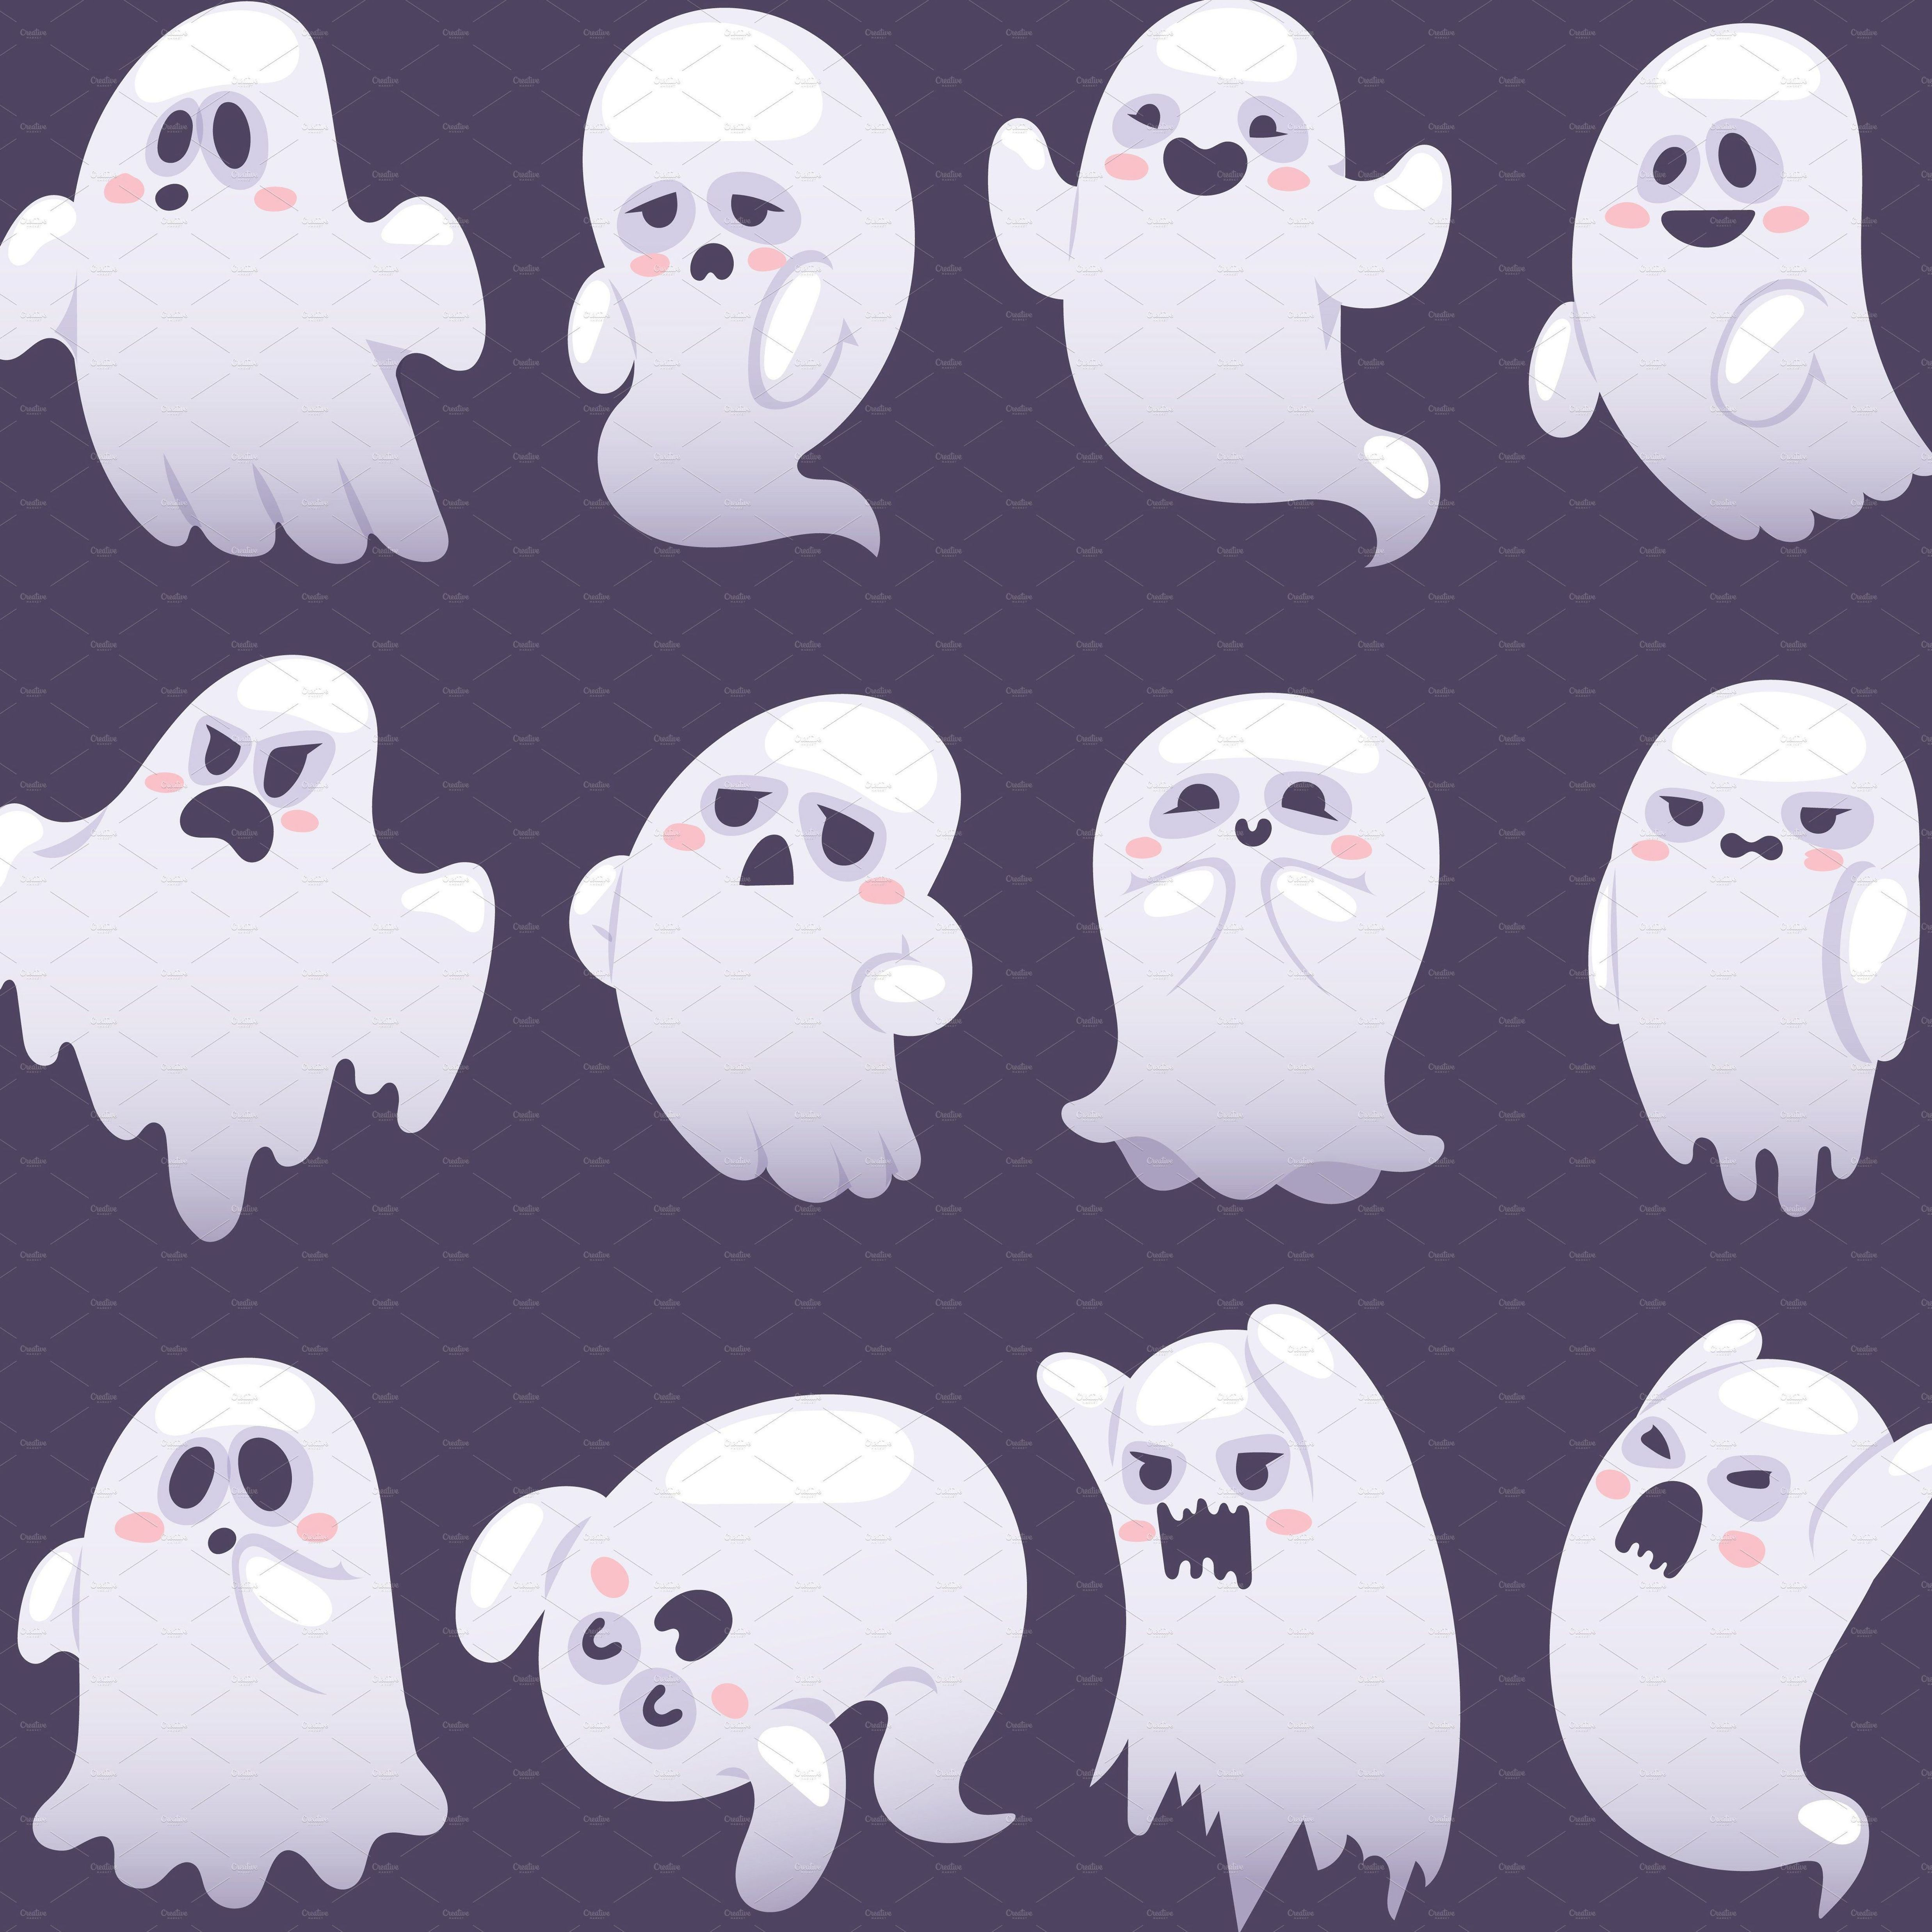 Cute Ghosts clipart set personal and commercial use vector Spooky digital clip art set.